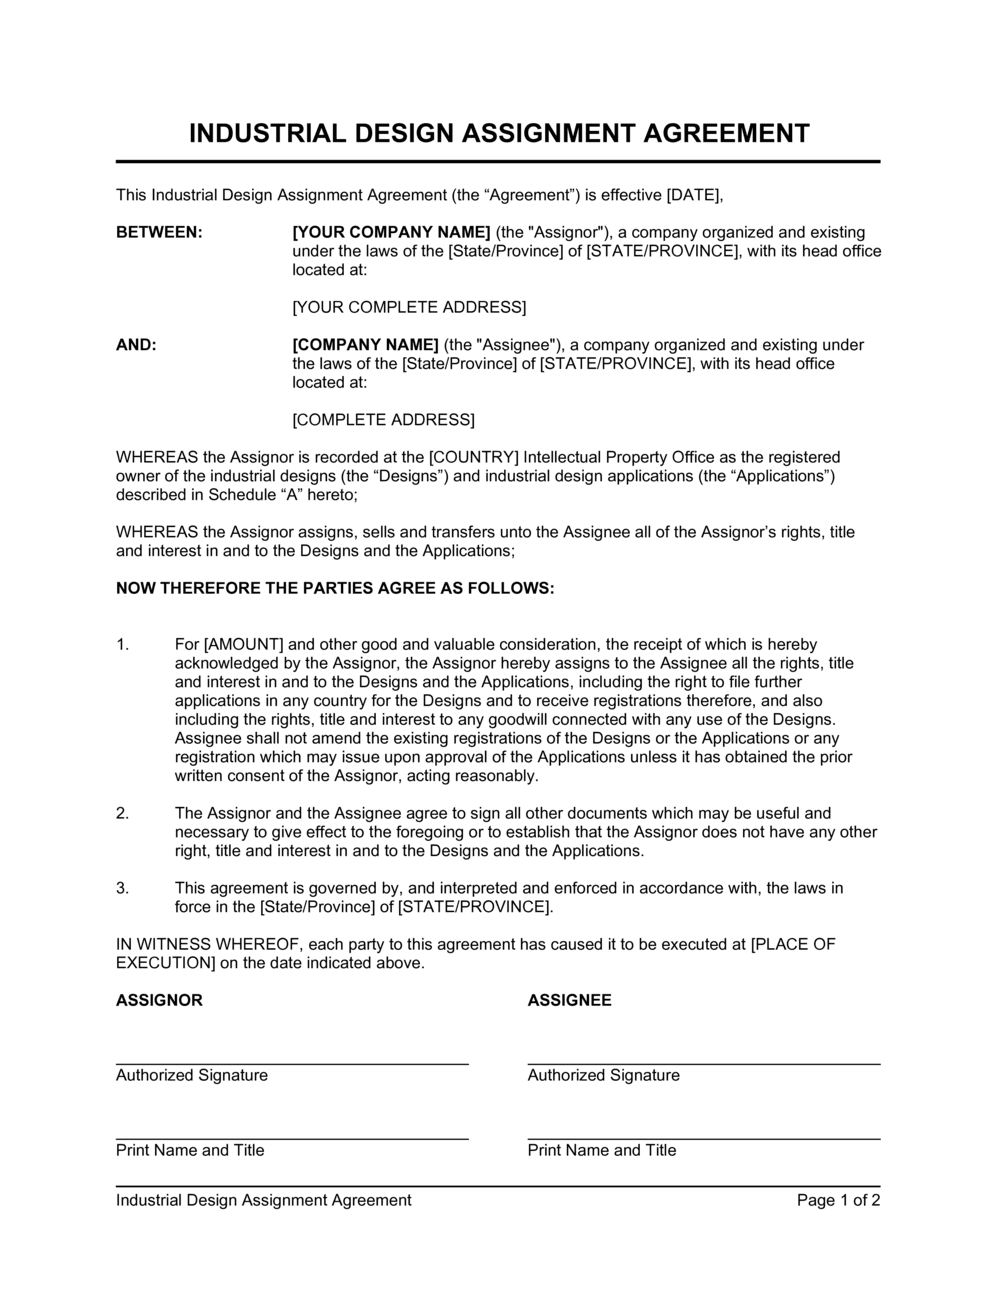 Business-in-a-Box's Industrial Design Assignment Agreement Template